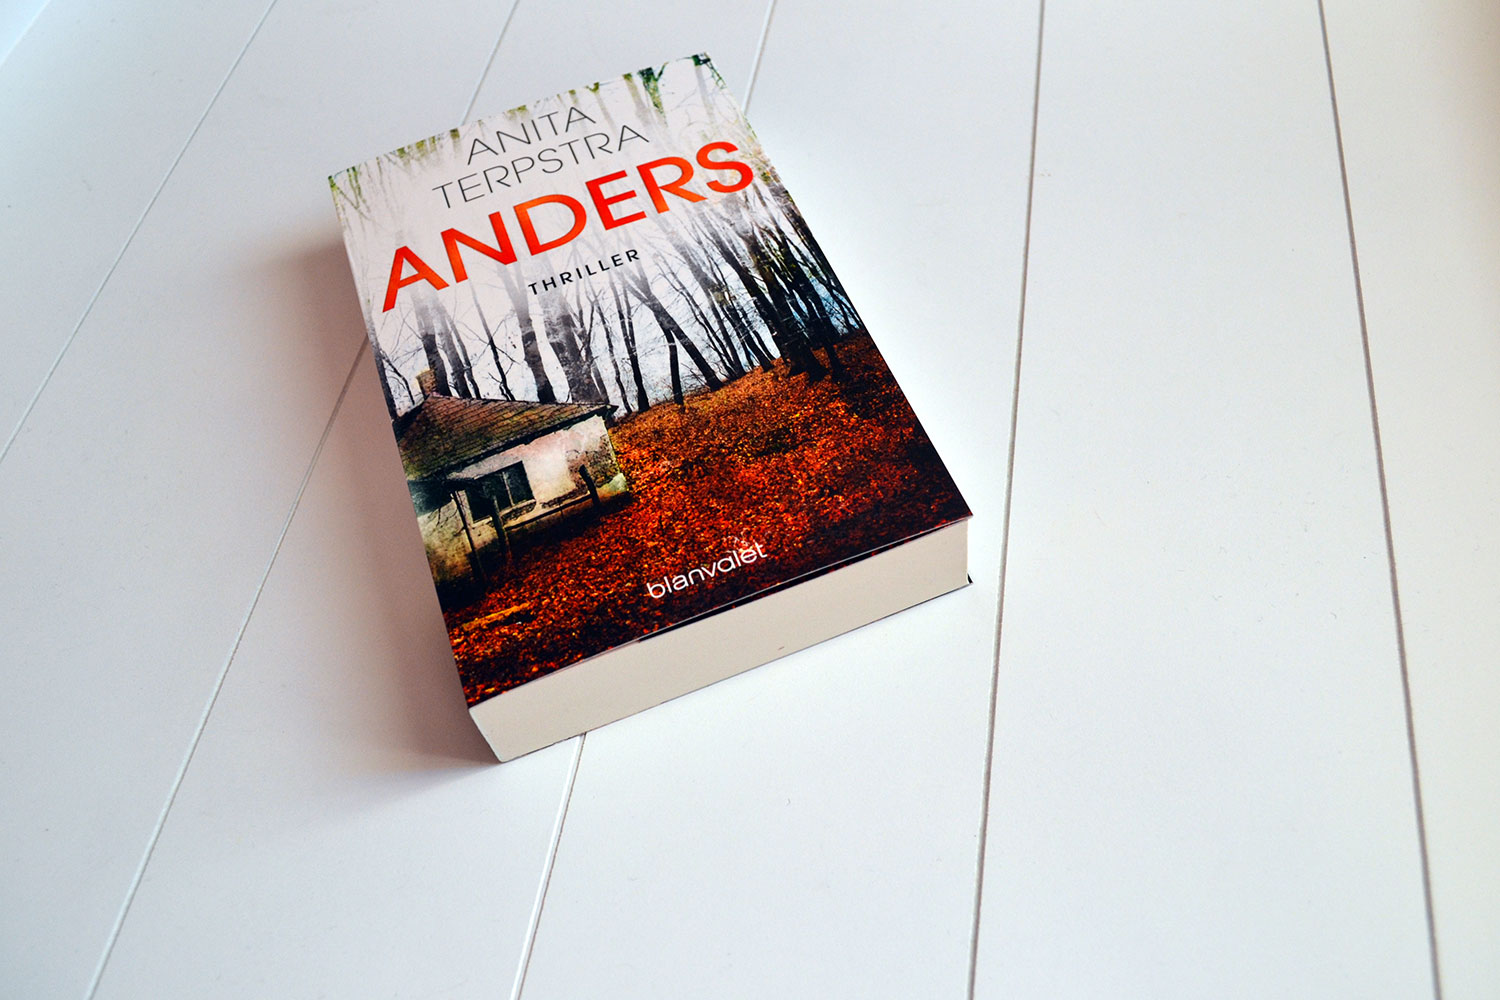 Books: Anders | Anita Terpstra - Anders